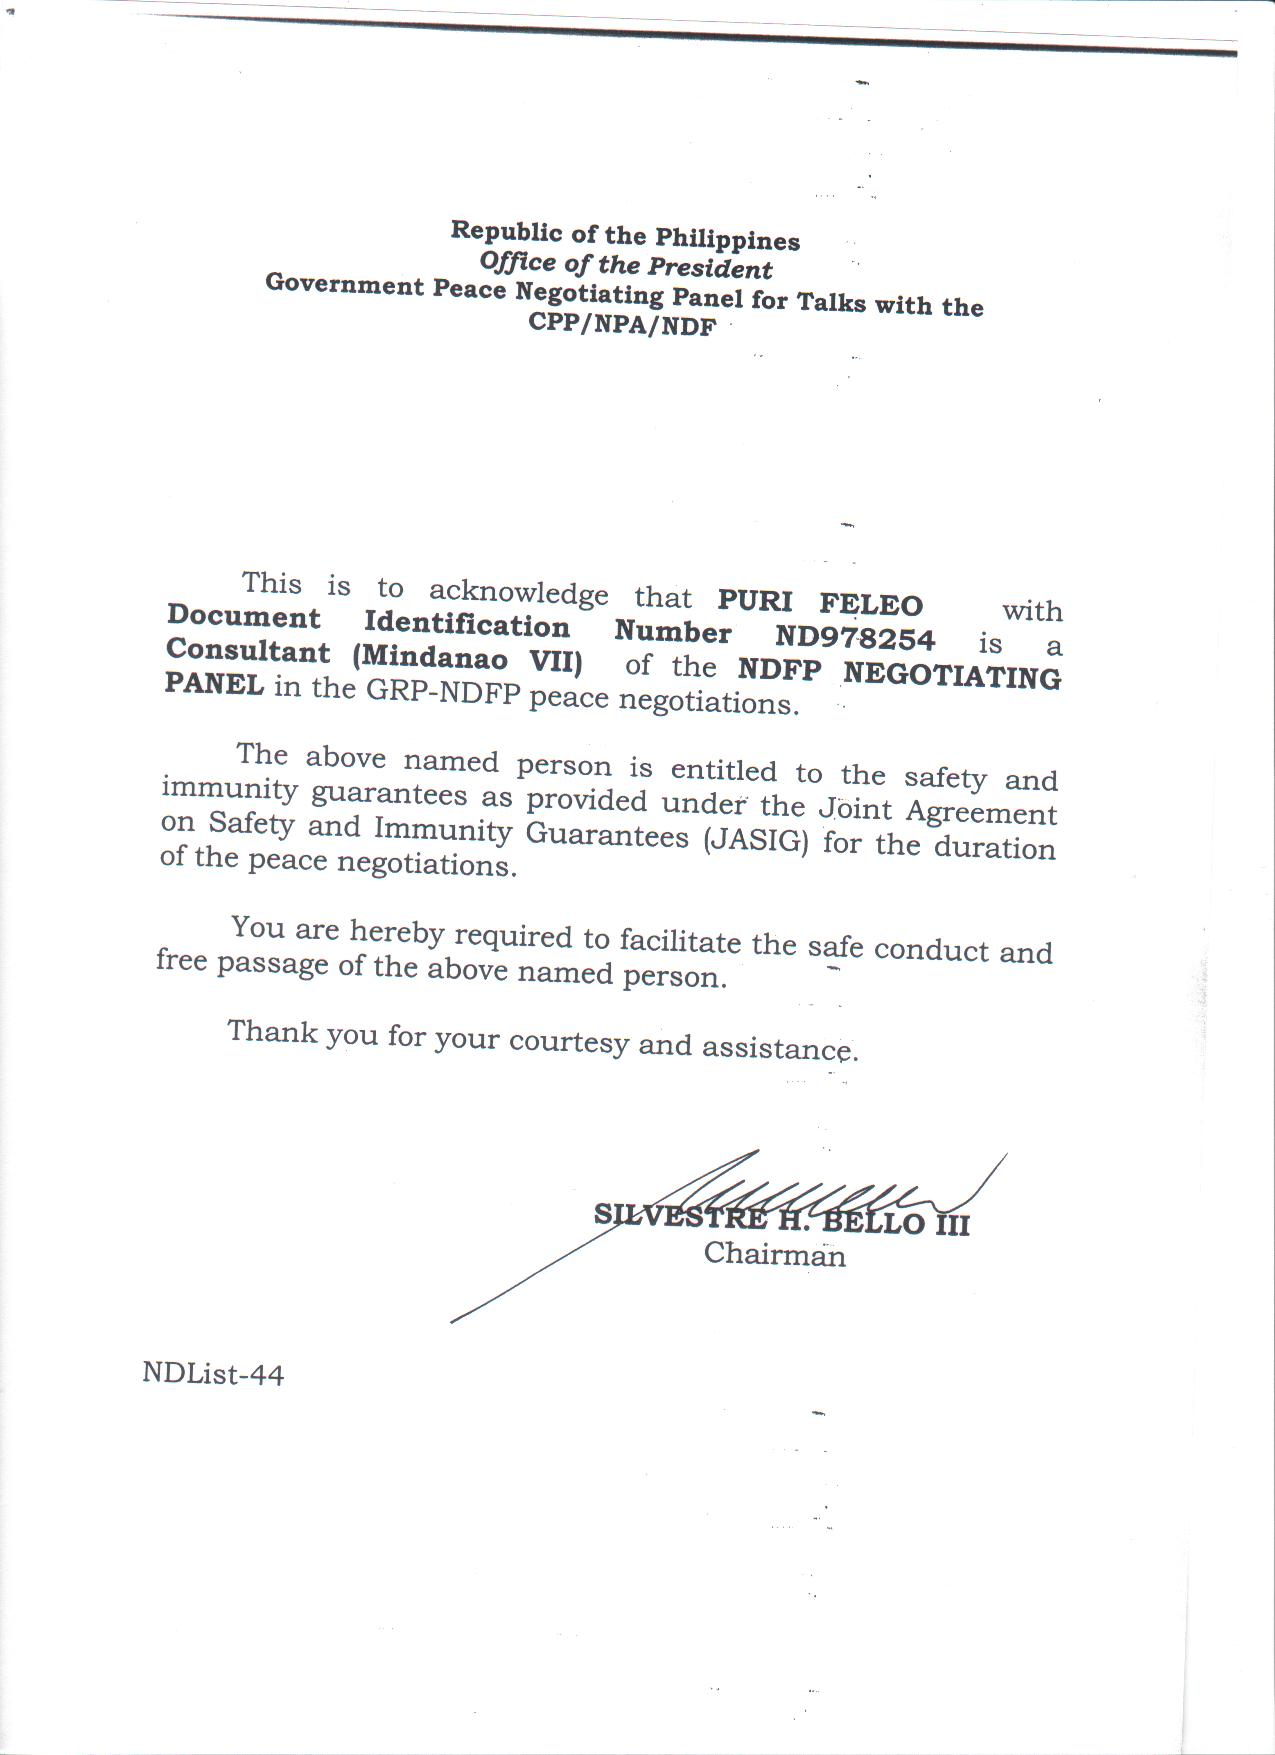 An electronic copy of the acknowledgement letter signed by former GRP panel chairman Silvestre Bello III certifying that Ma. Loida  Magpatoc is an NDFP consultant and covered by Jasig. (Courtesy of the NDFP)